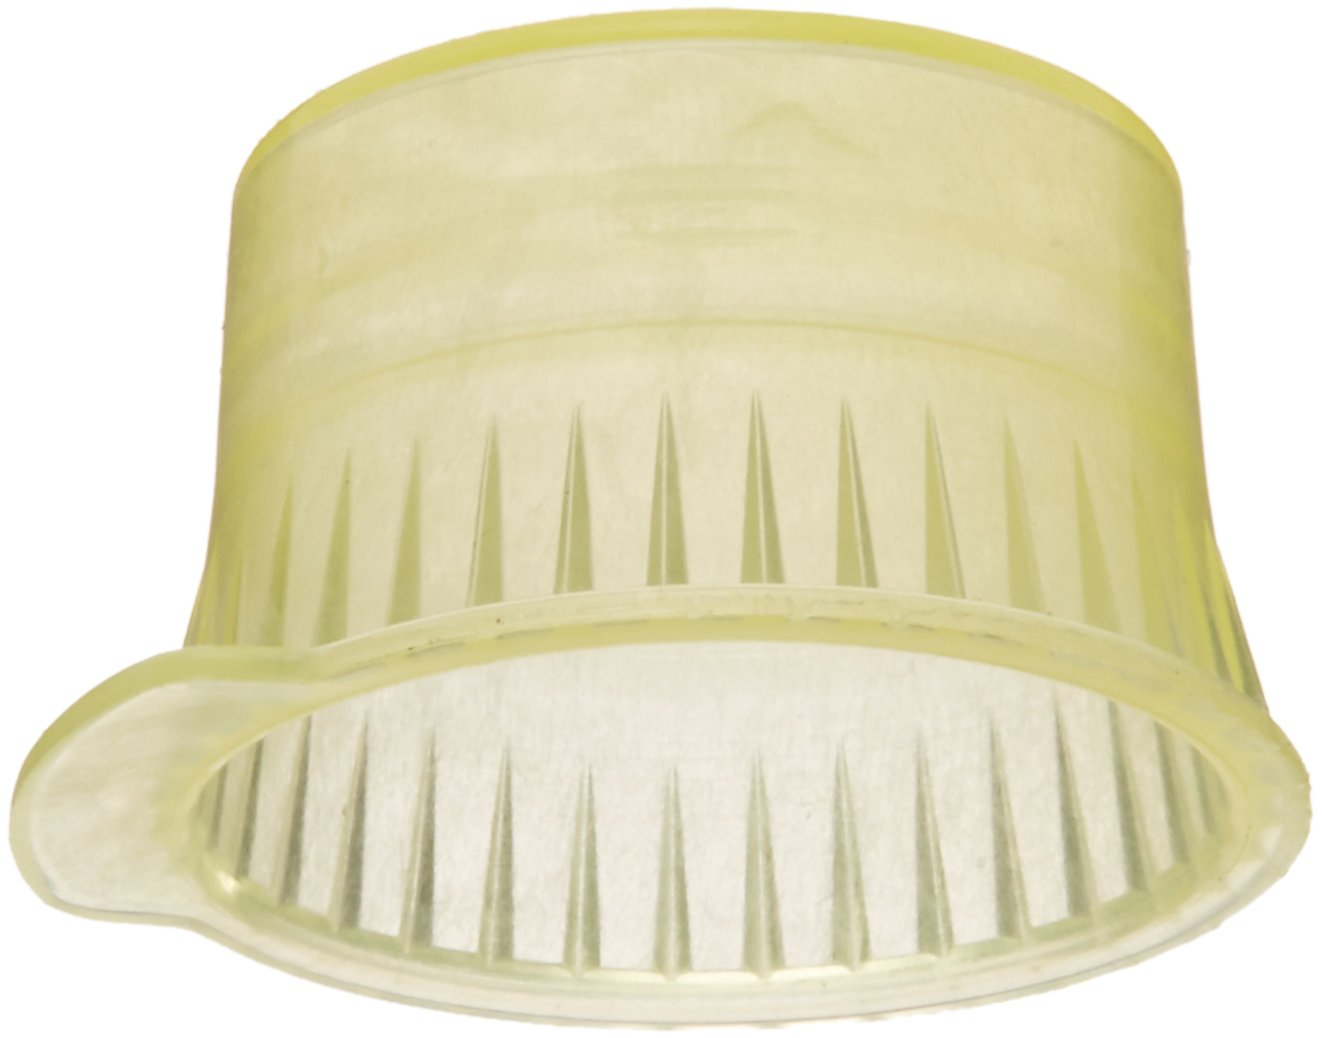 PlatinumCode 88031Y 13mm Cap for 13mm Glass Tubes, Yellow (Bag of 1000)